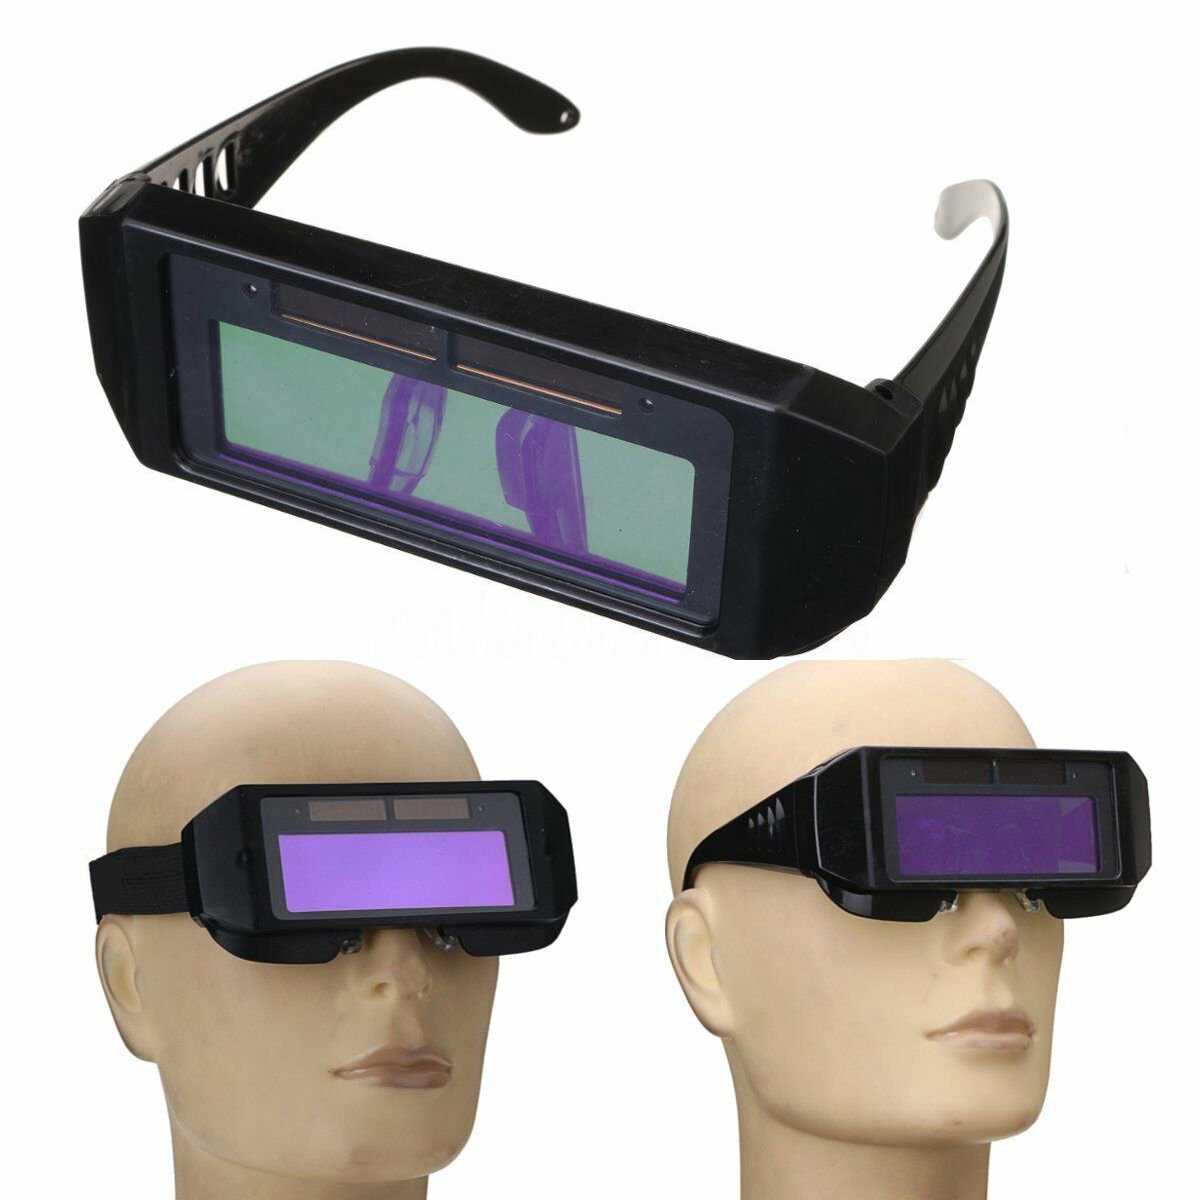 Auto Darkening Welding Mask Helmet Goggle Welders Glasses Arc PC Goggles Autos Shades For Welding Protection